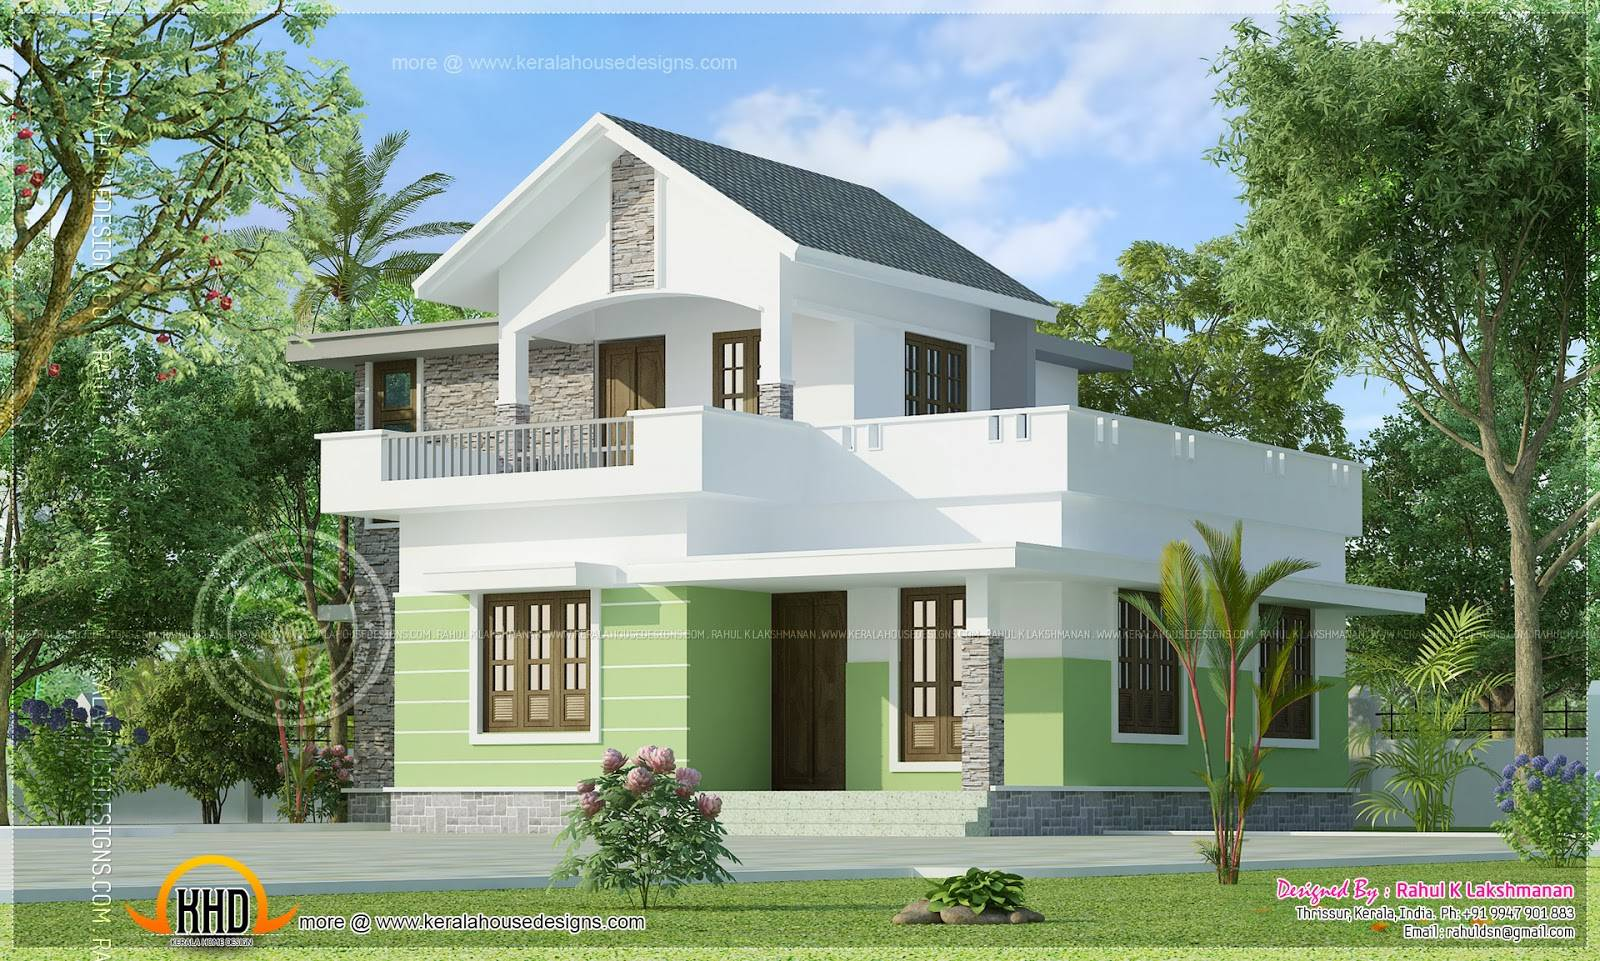 Small house images in india